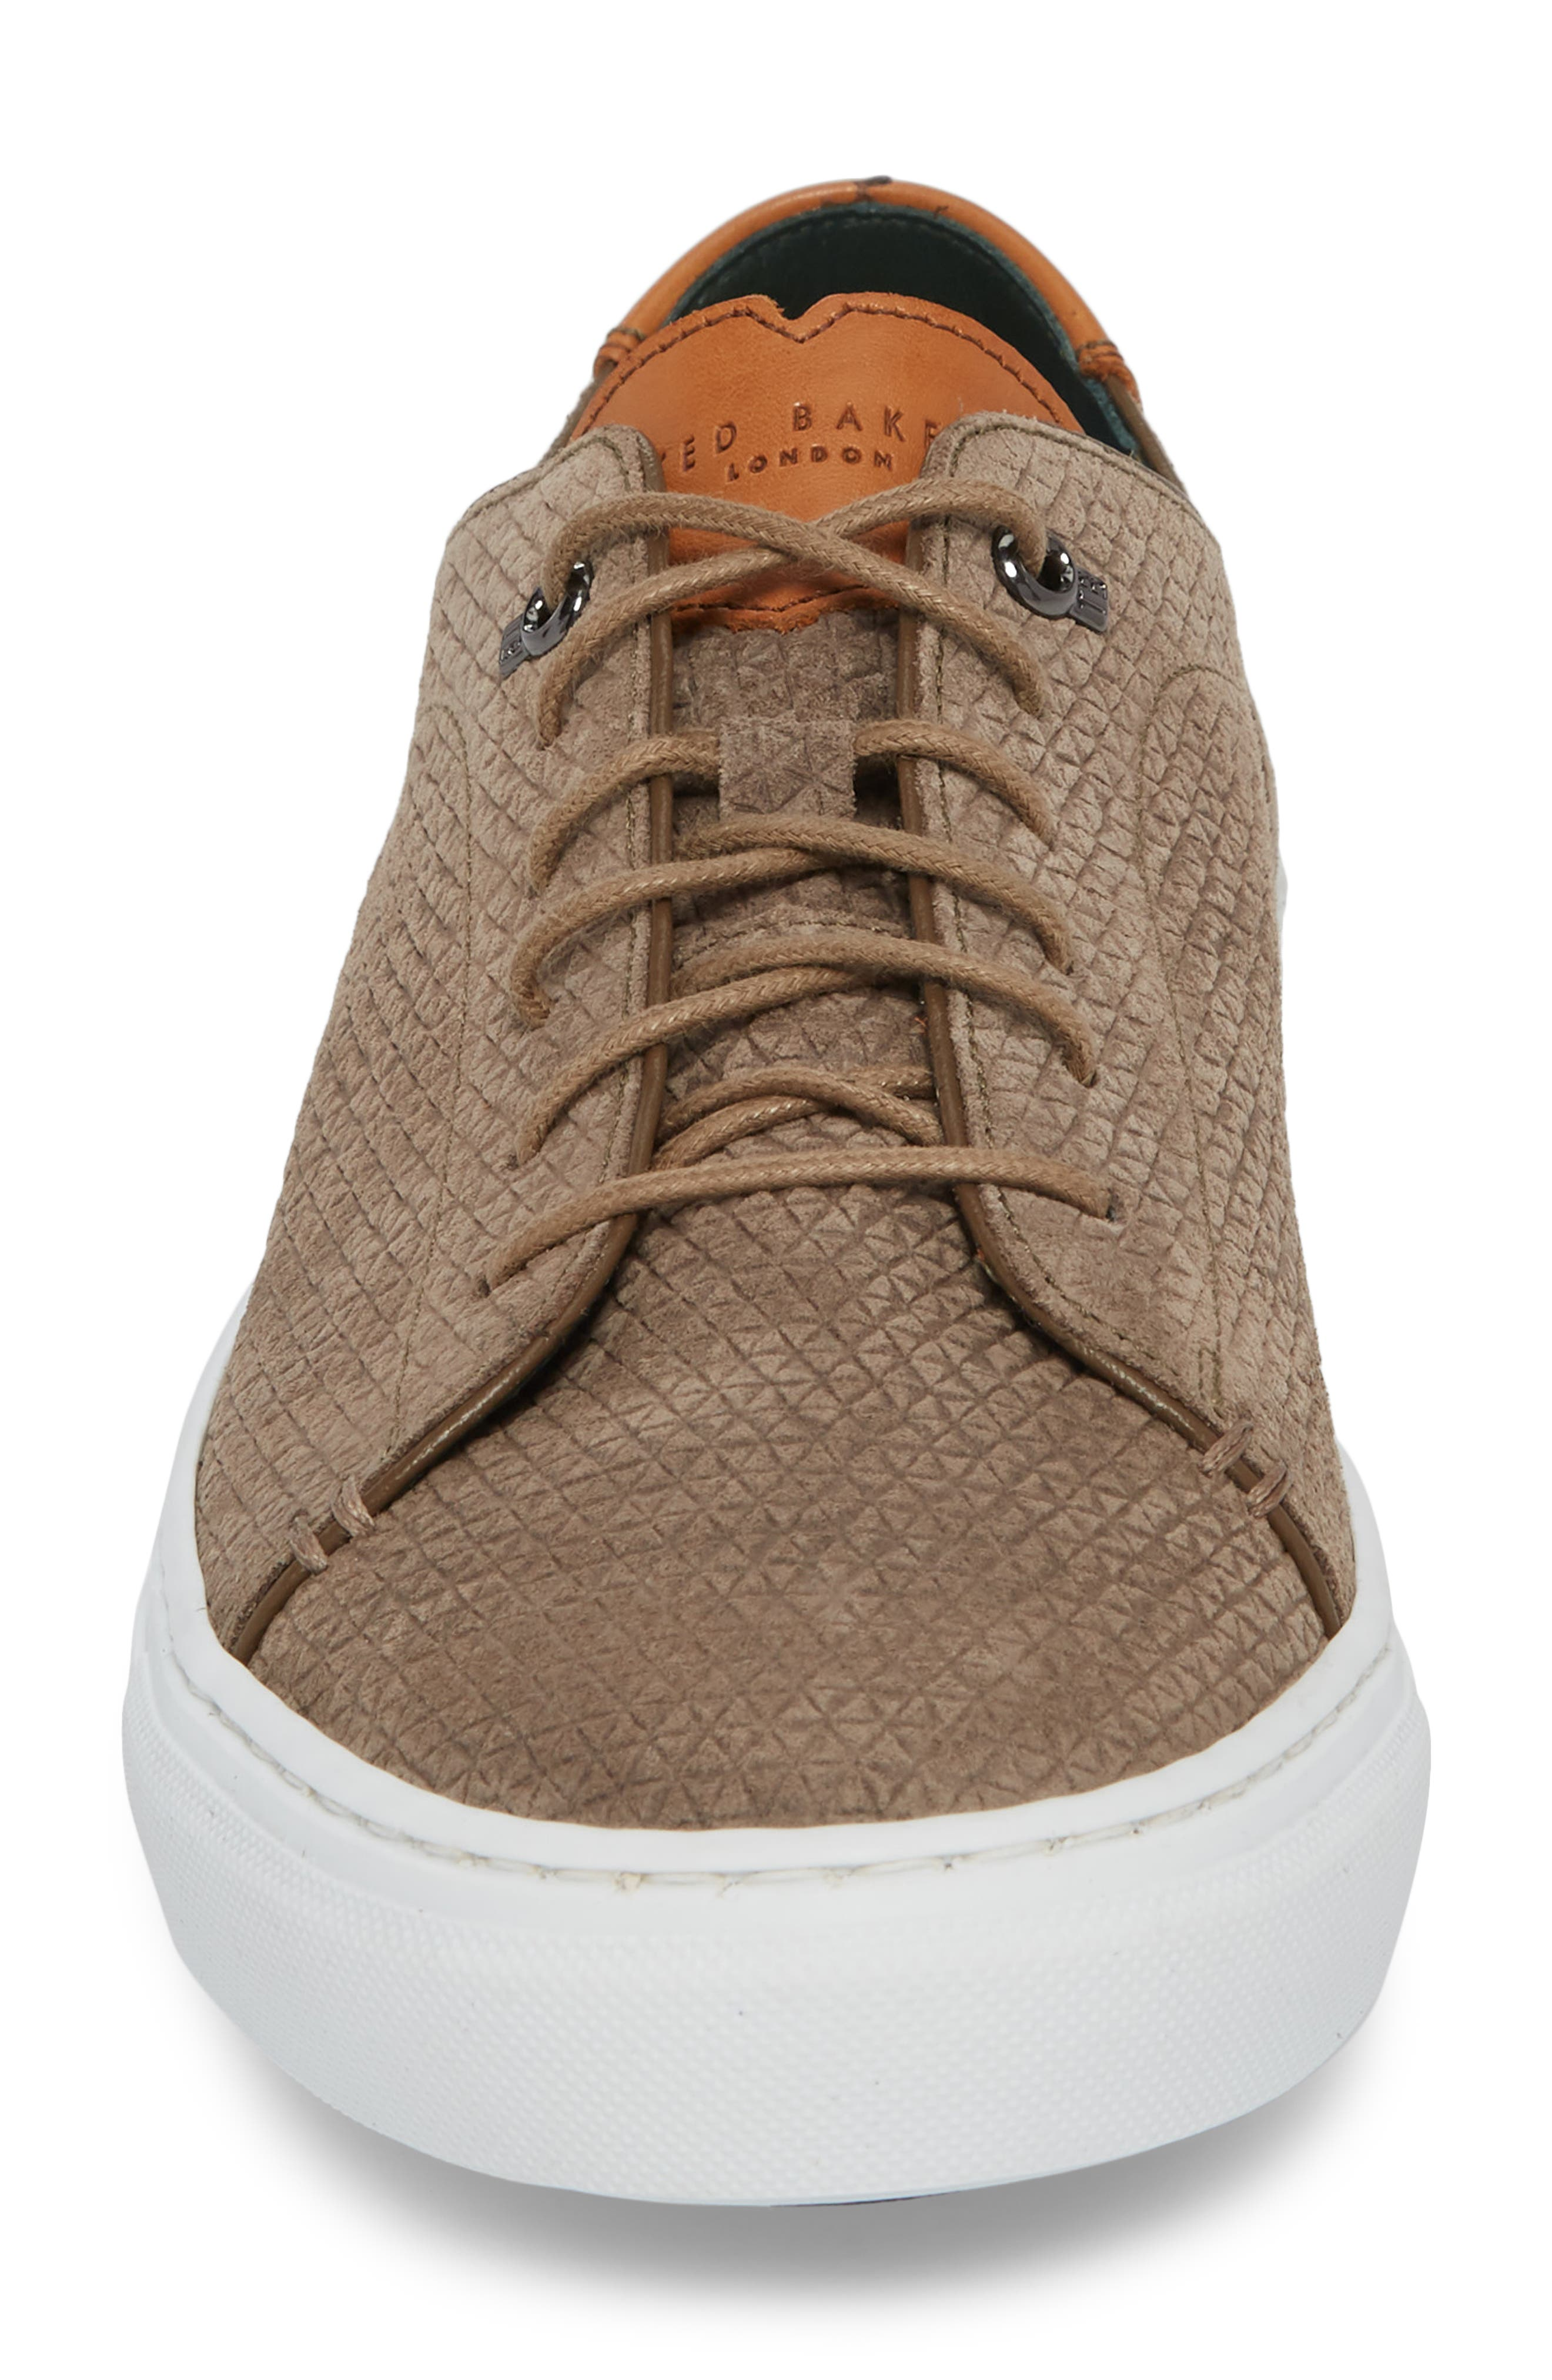 Duukes Embossed Low Top Sneaker,                             Alternate thumbnail 4, color,                             Grey Embossed Suede